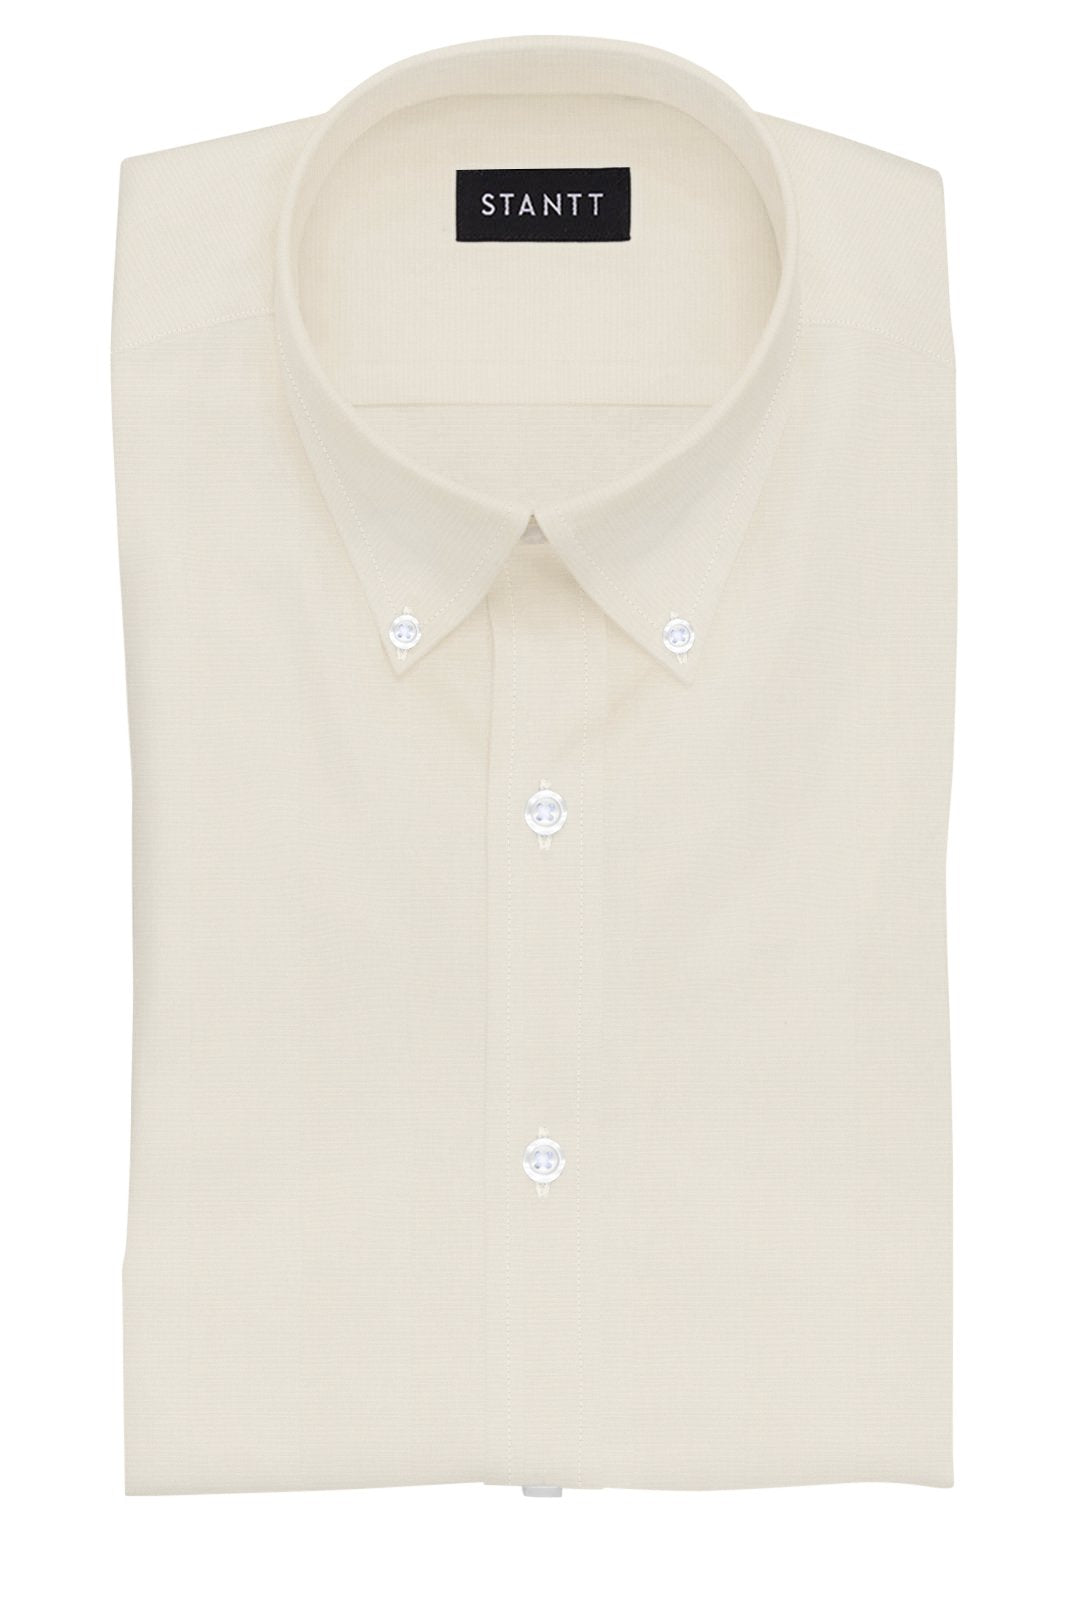 Ecru Poplin: Button-Down Collar, Barrel Cuff